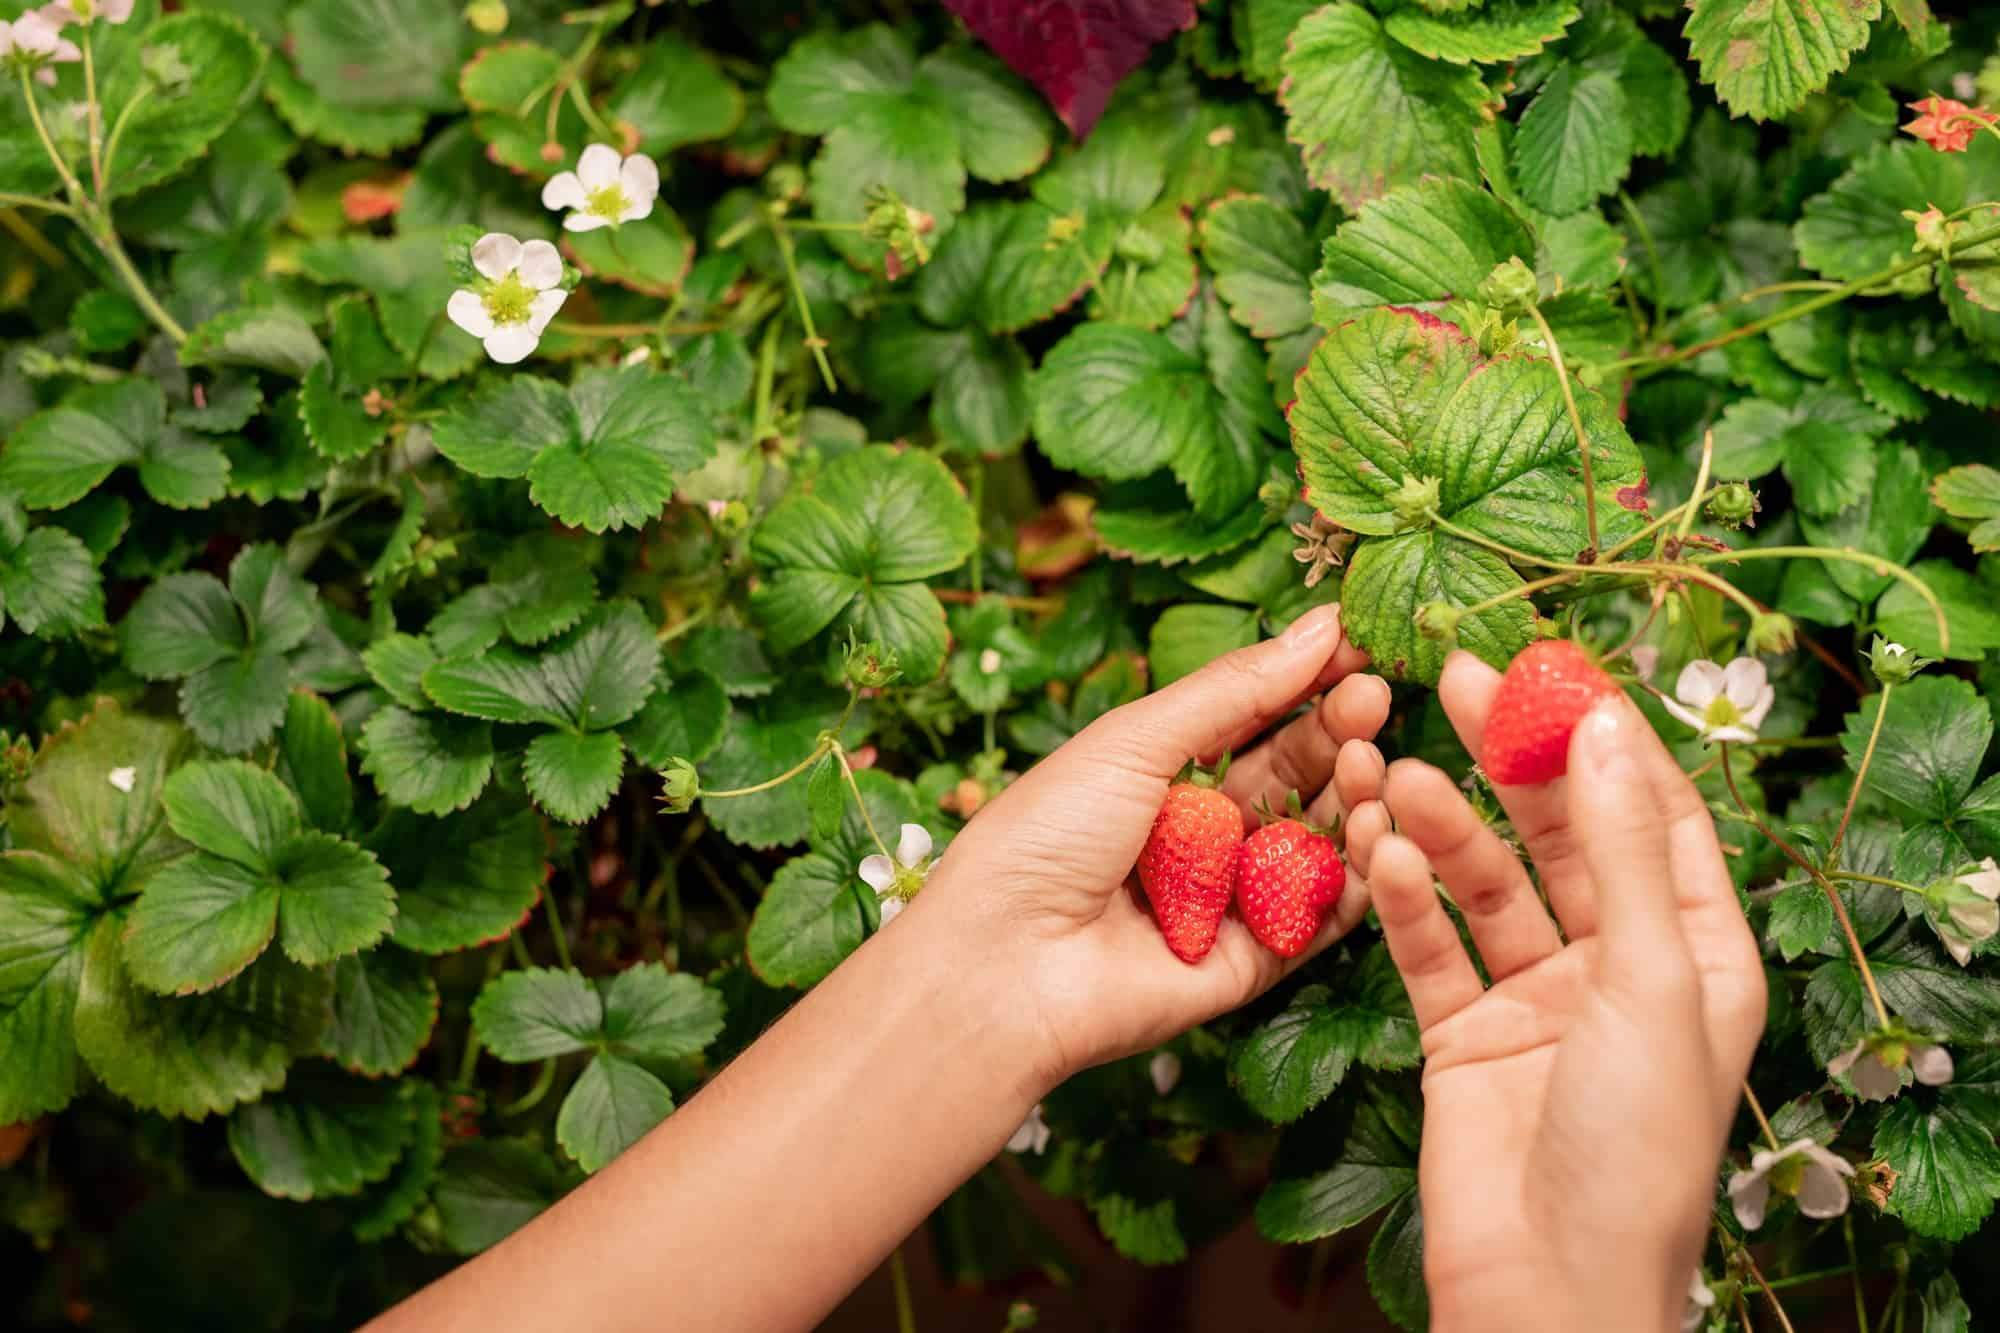 Best Plants to Grow With Strawberries